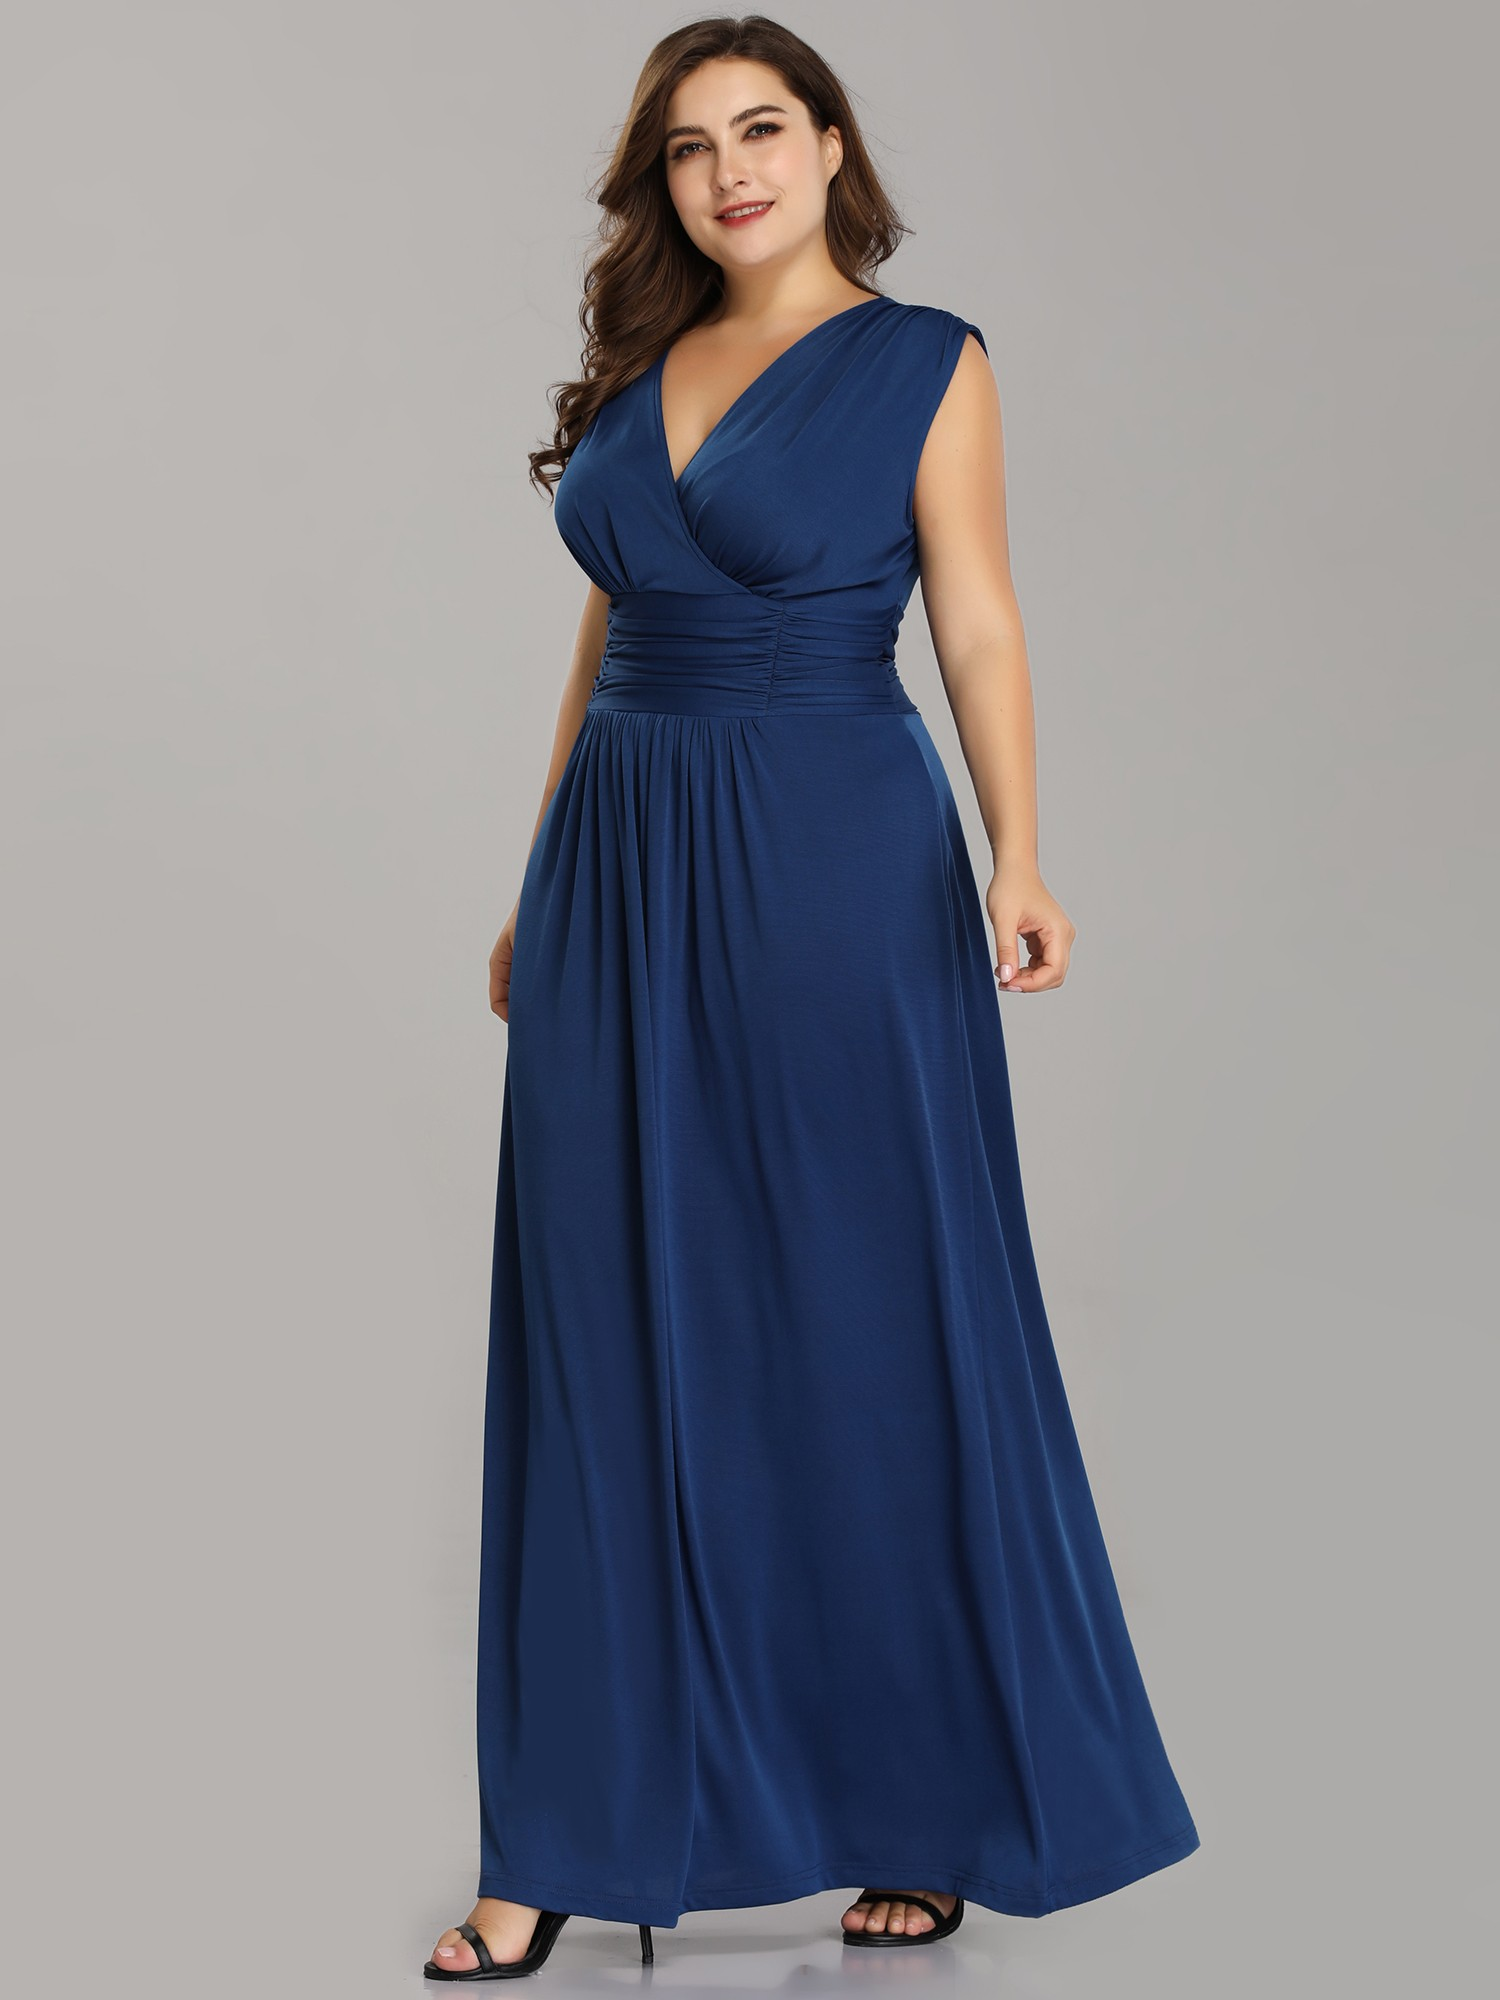 Plus Size Blue V Neck Mother Of The Bride Dresses